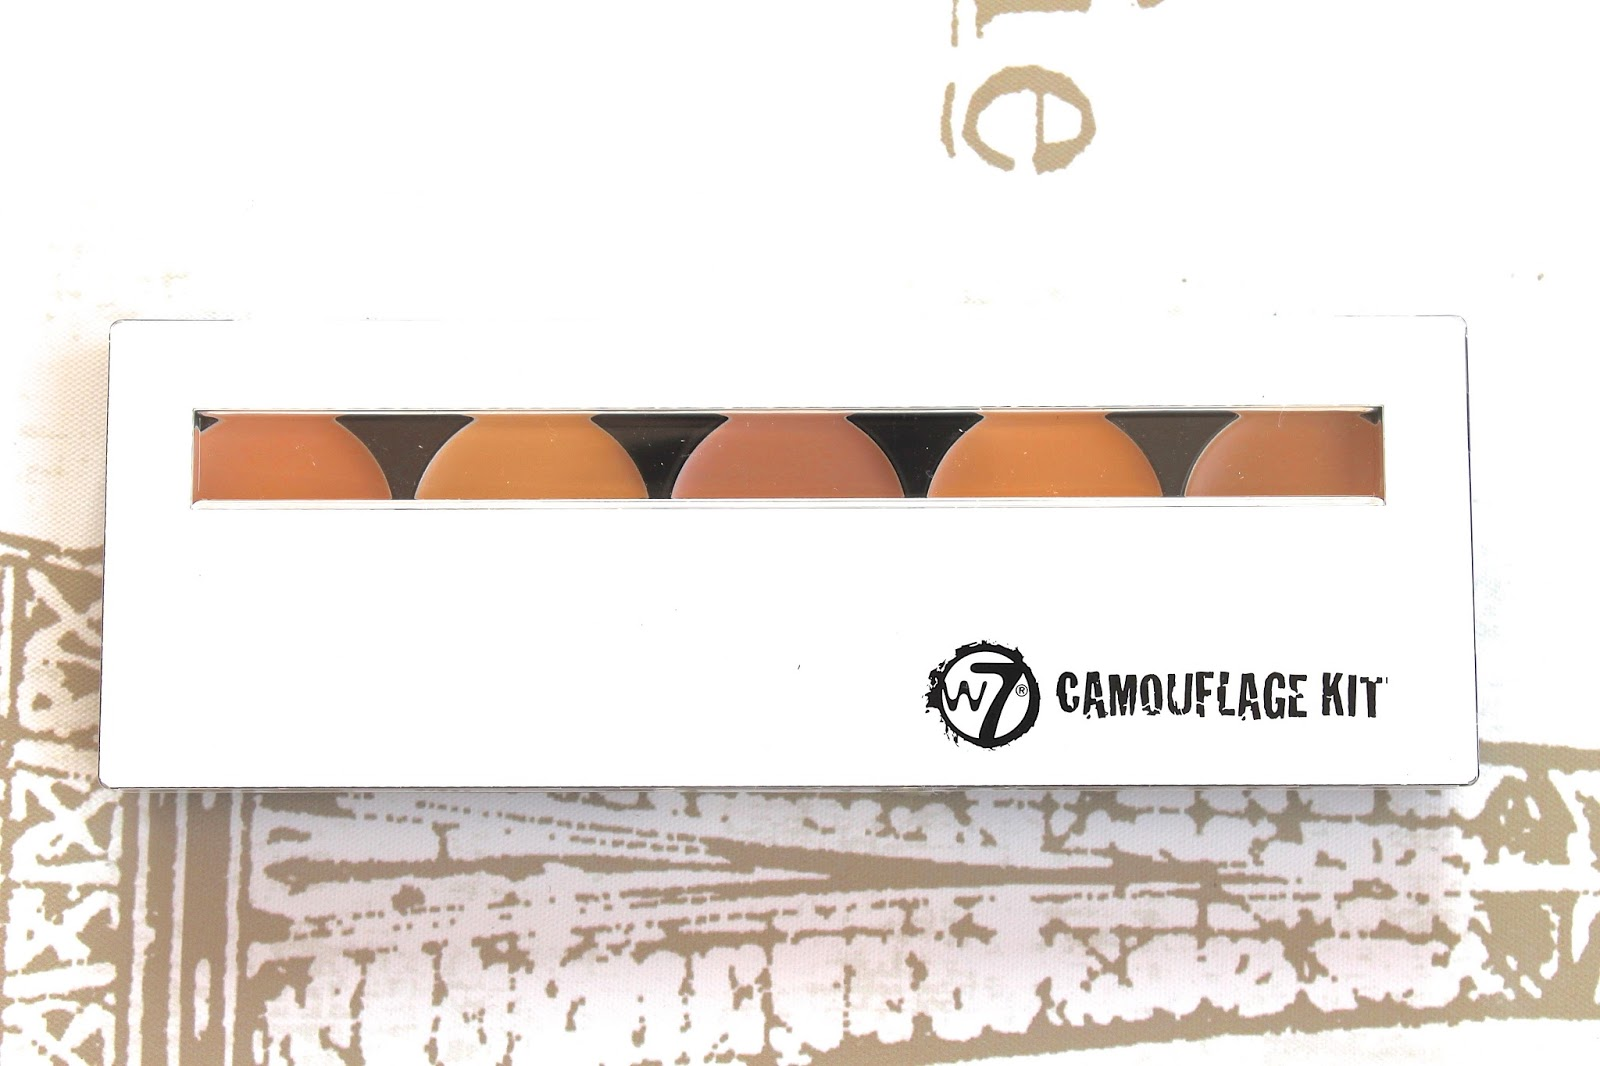 w7 makeup camouflage kit review